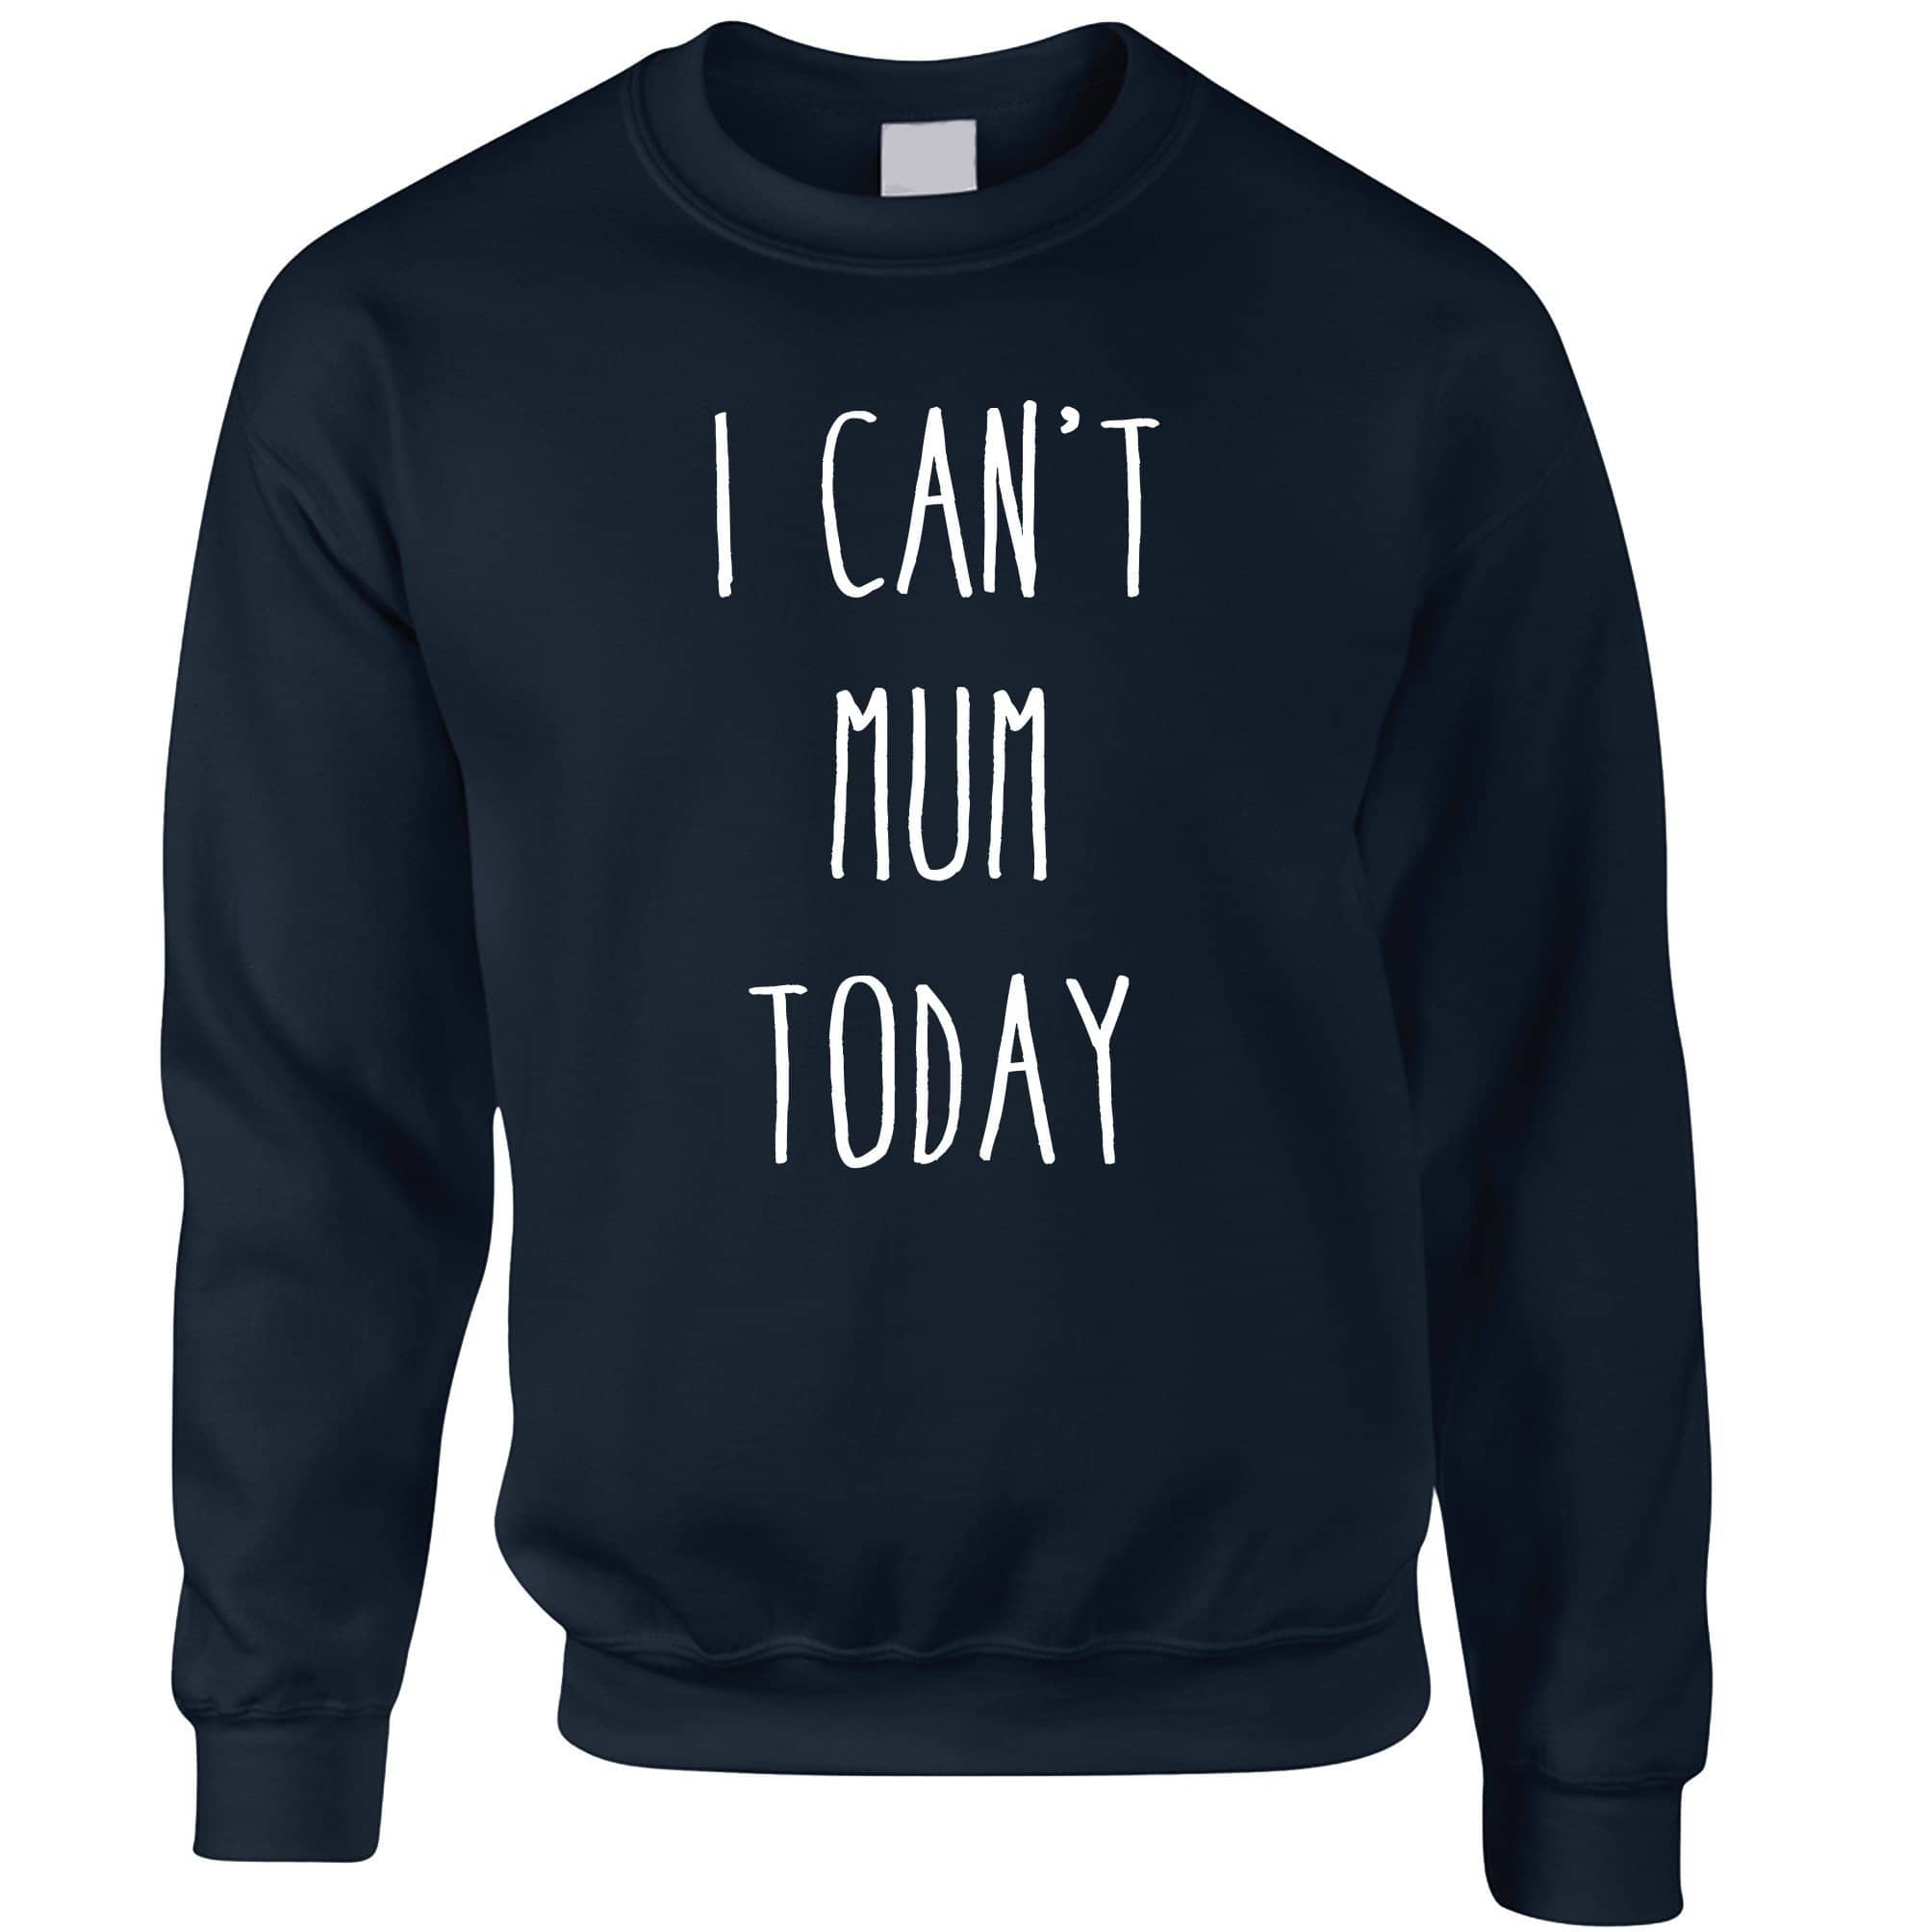 Novelty Mother's Day Jumper I Can't Mum Today Slogan Sweatshirt Sweater